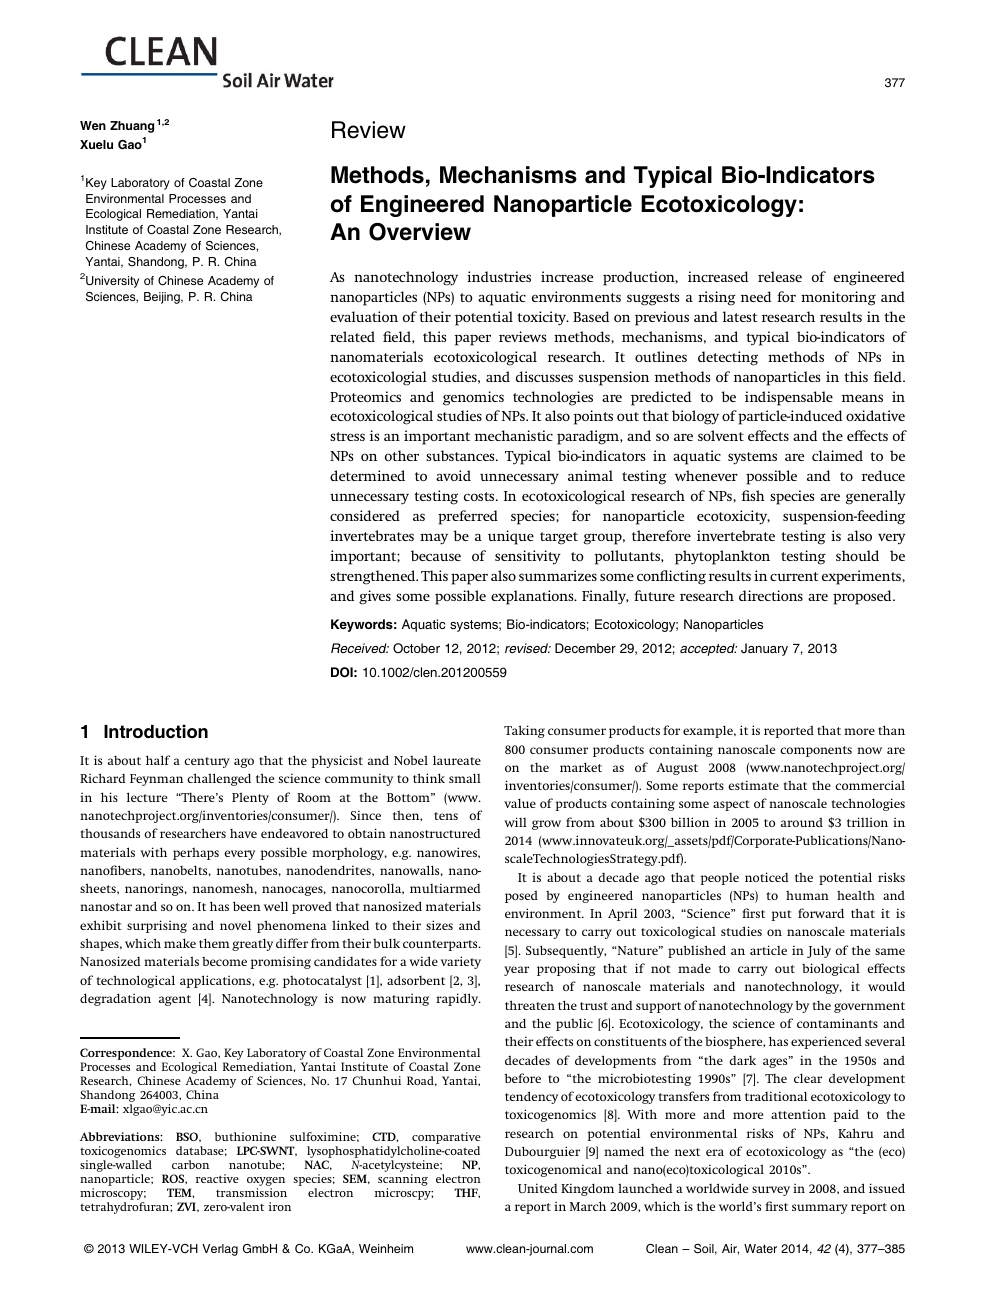 Methods, Mechanisms and Typical Bio-Indicators of Engineered